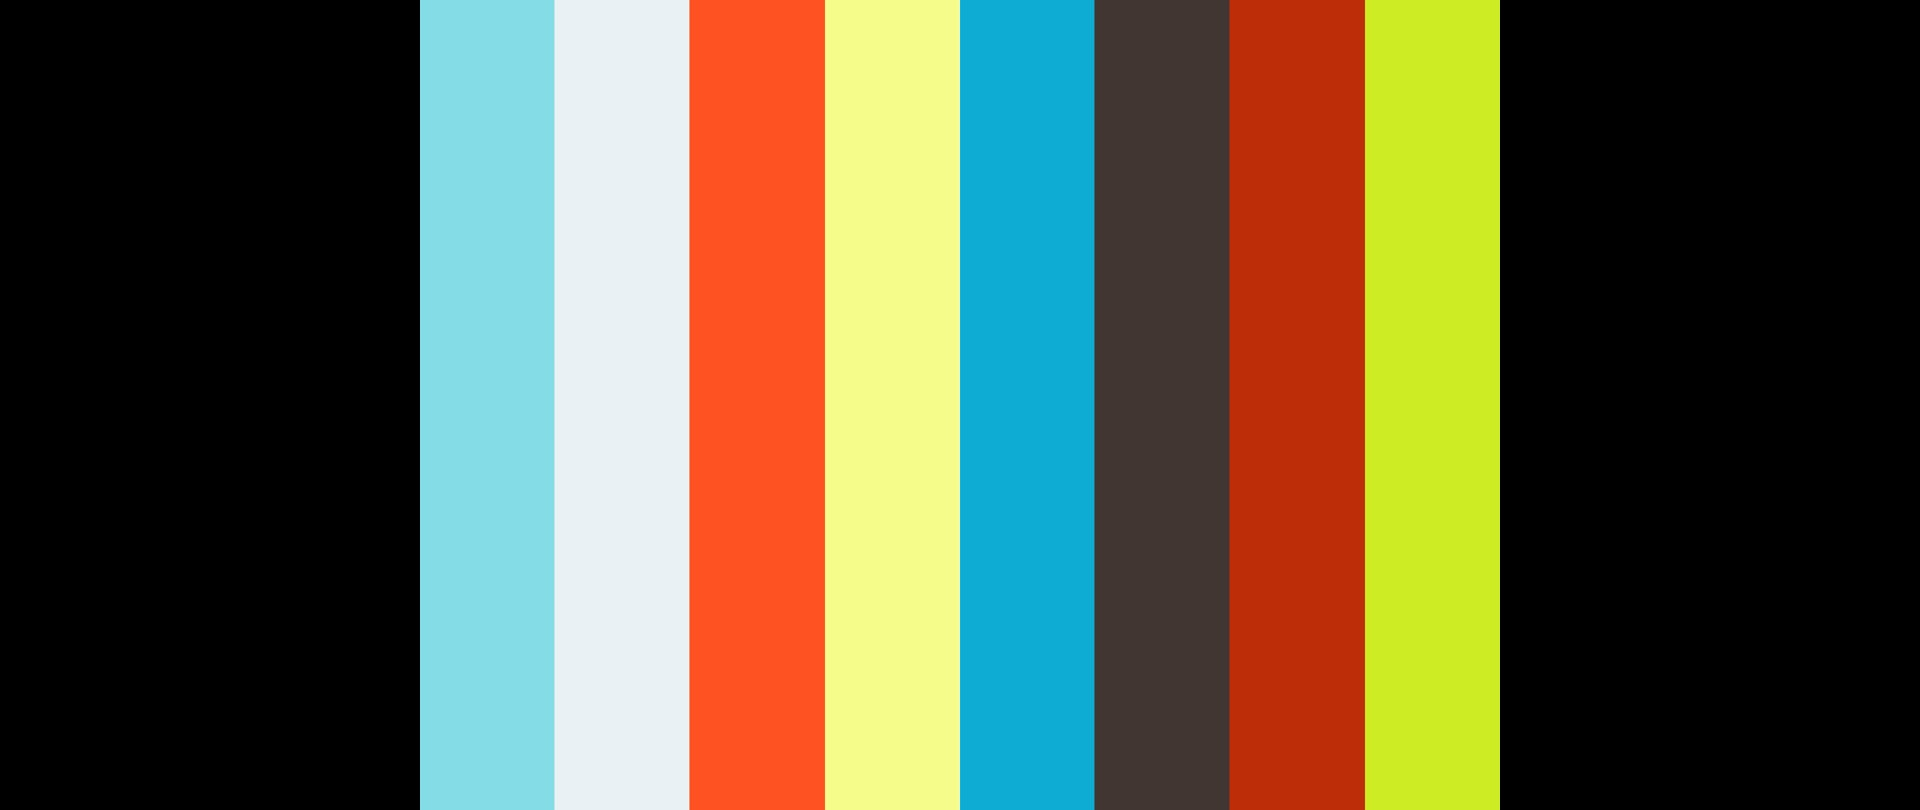 Stephanie & Haren Wedding Video Filmed at Mandurama, New South Wales